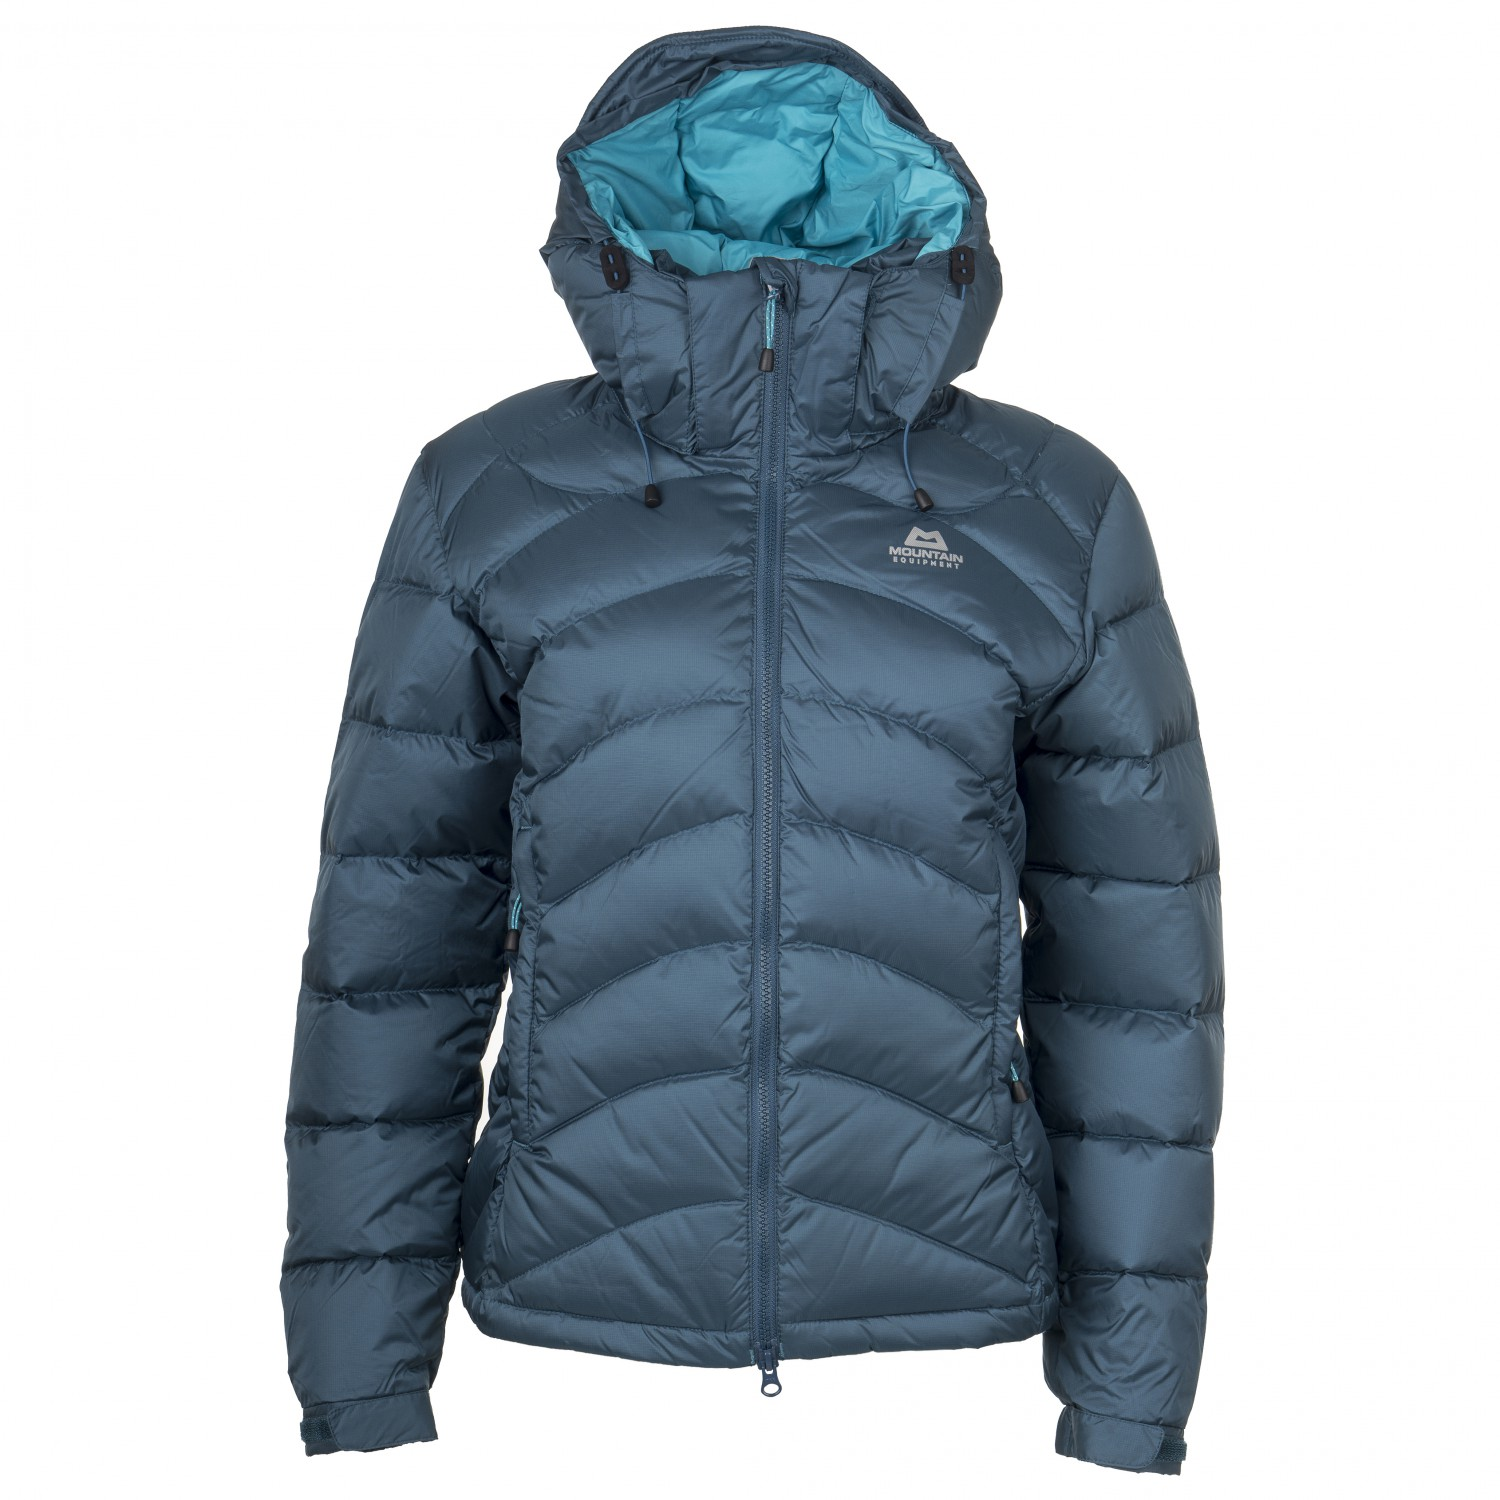 Mountain Equipment Women's Lightline Jacket Daunenjacke Bracken | 10 (UK)